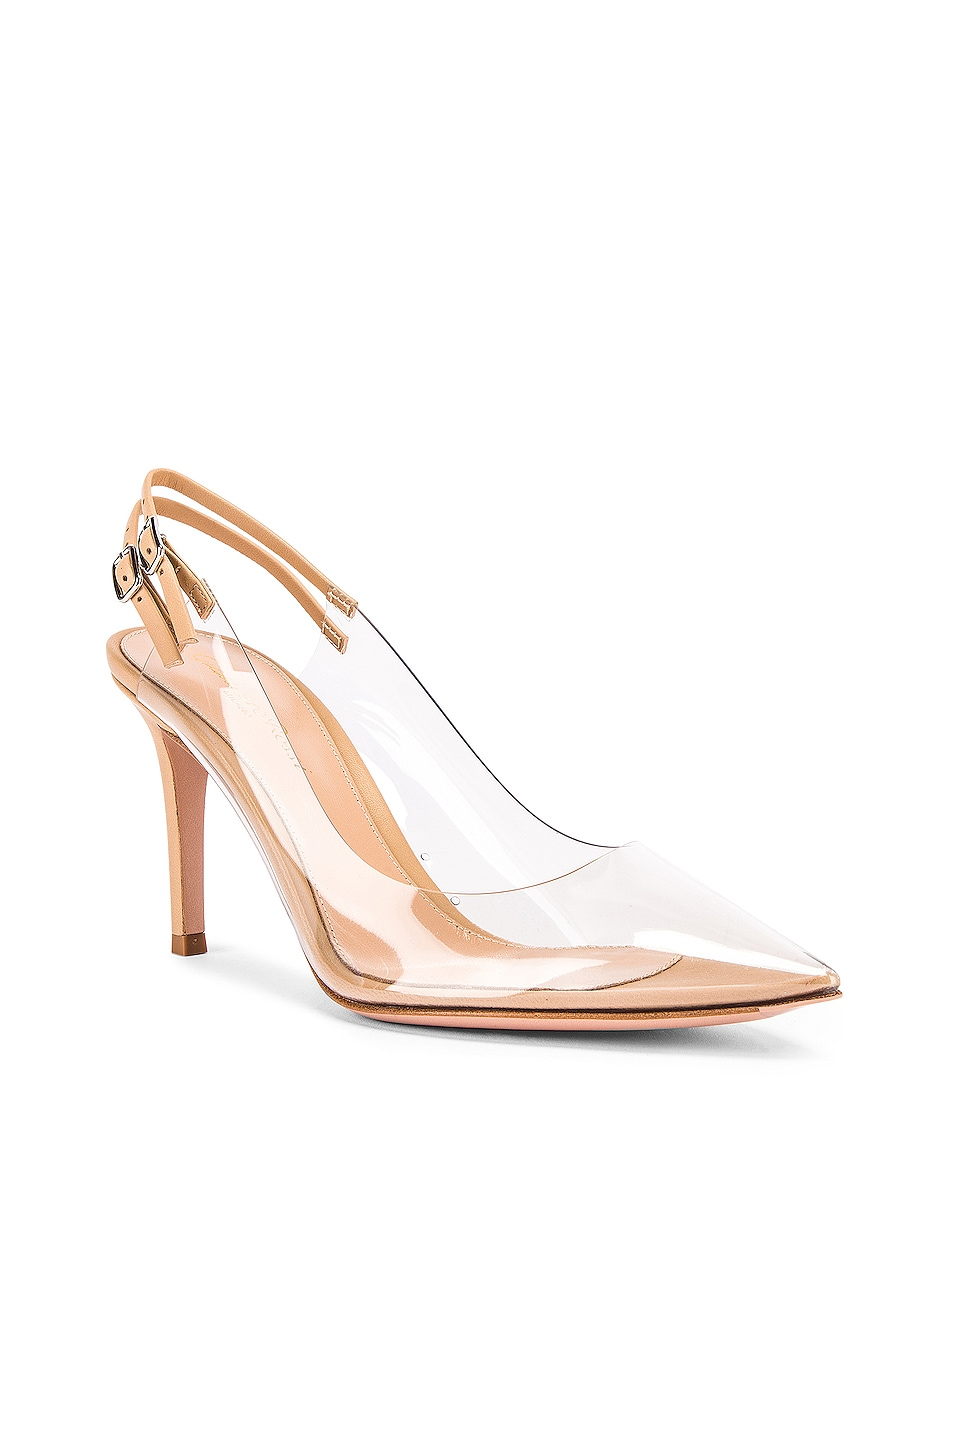 hot sale 2019 Gianvito Rossi Plexi Double Strap Heels Transparent & Nude